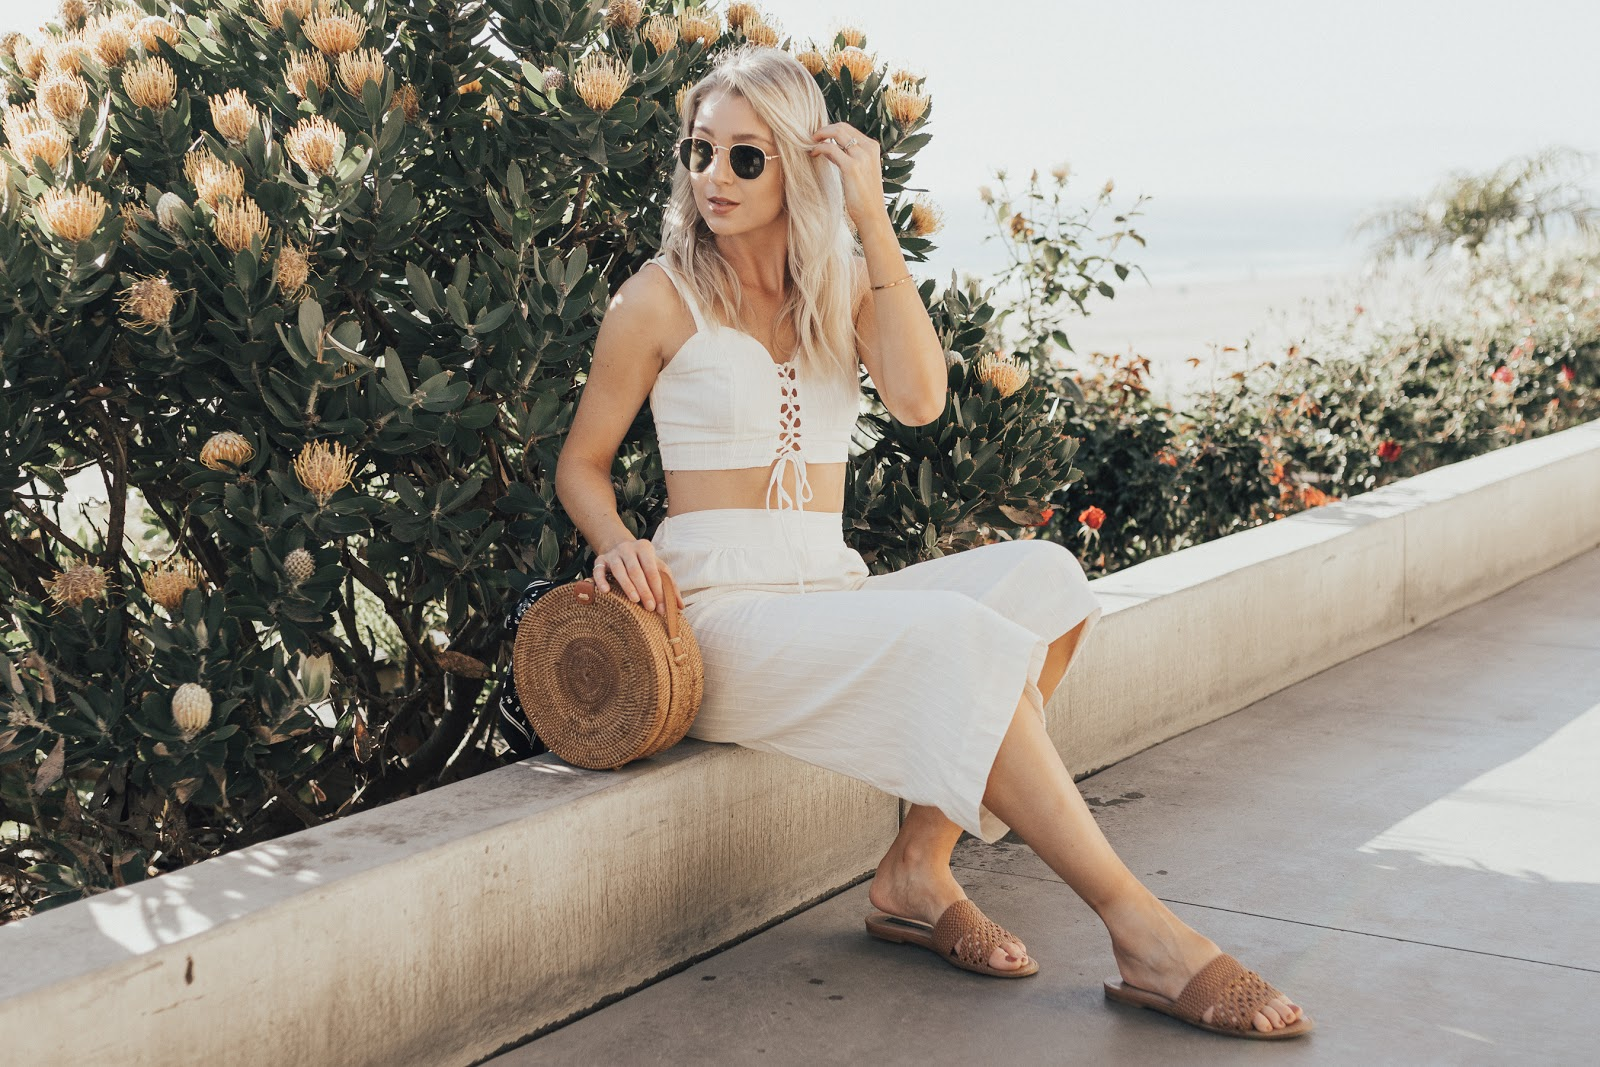 beachside outfit | Love, Lenore